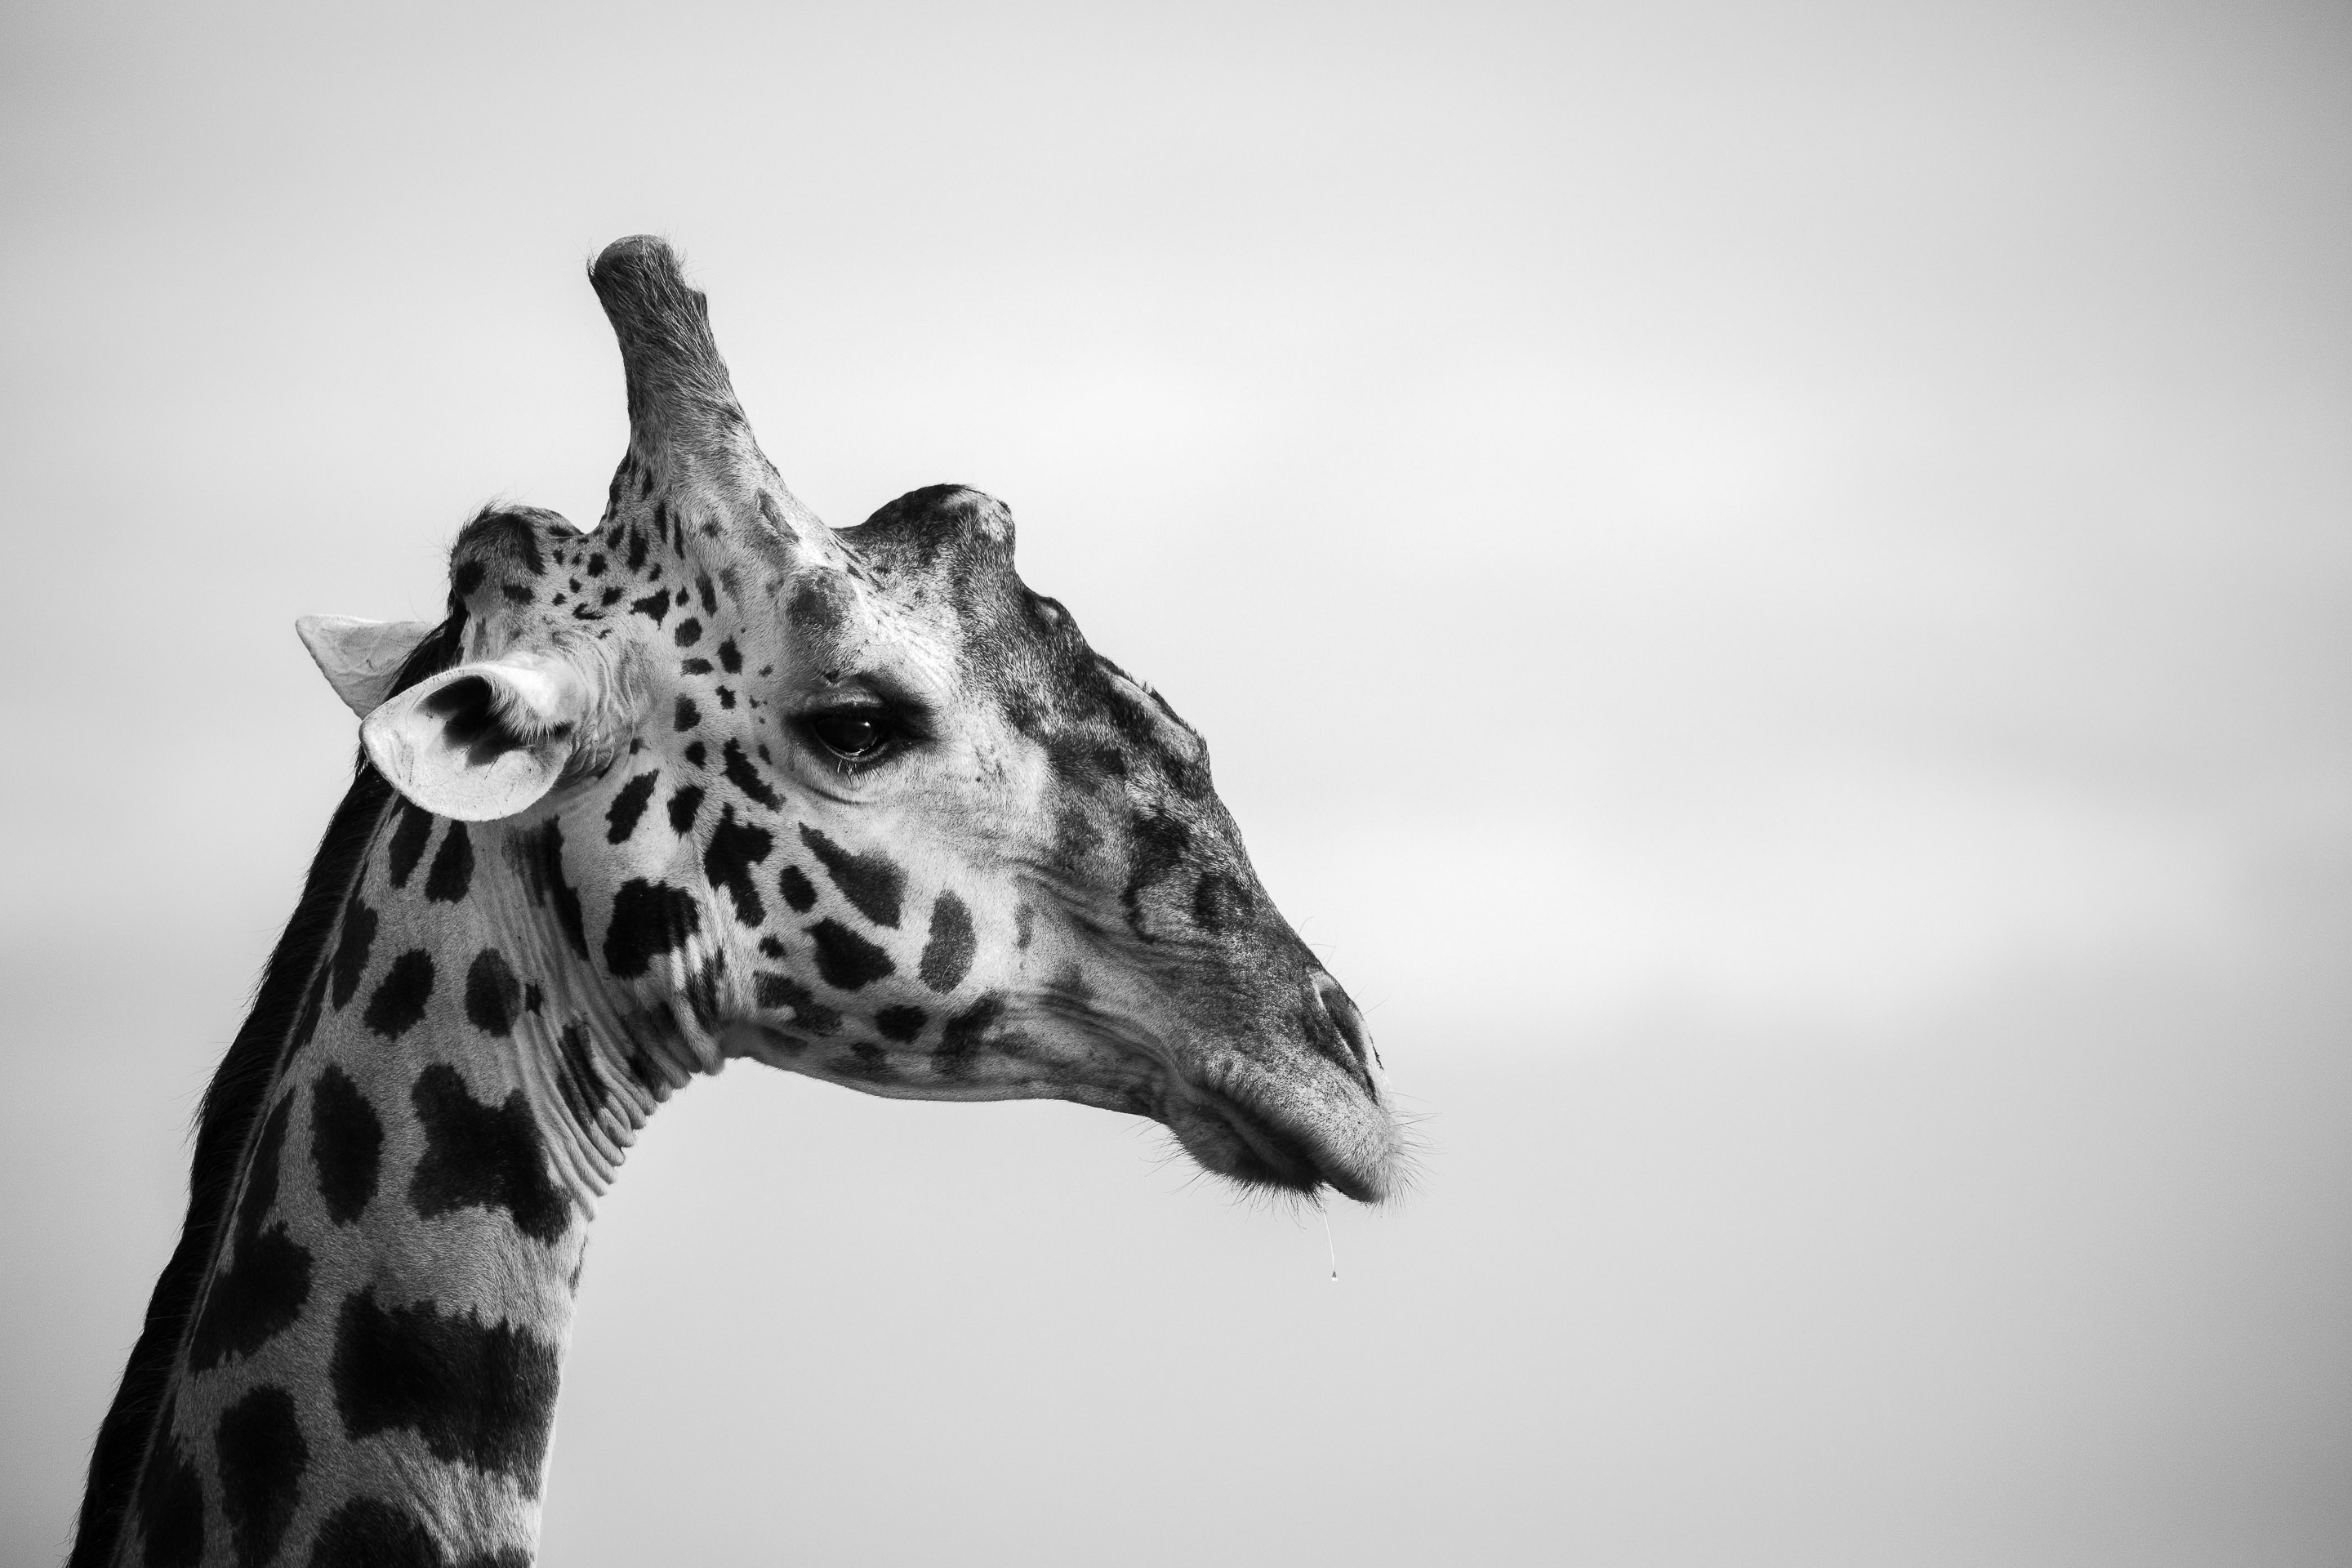 Portrait of an old male giraffe in black and white